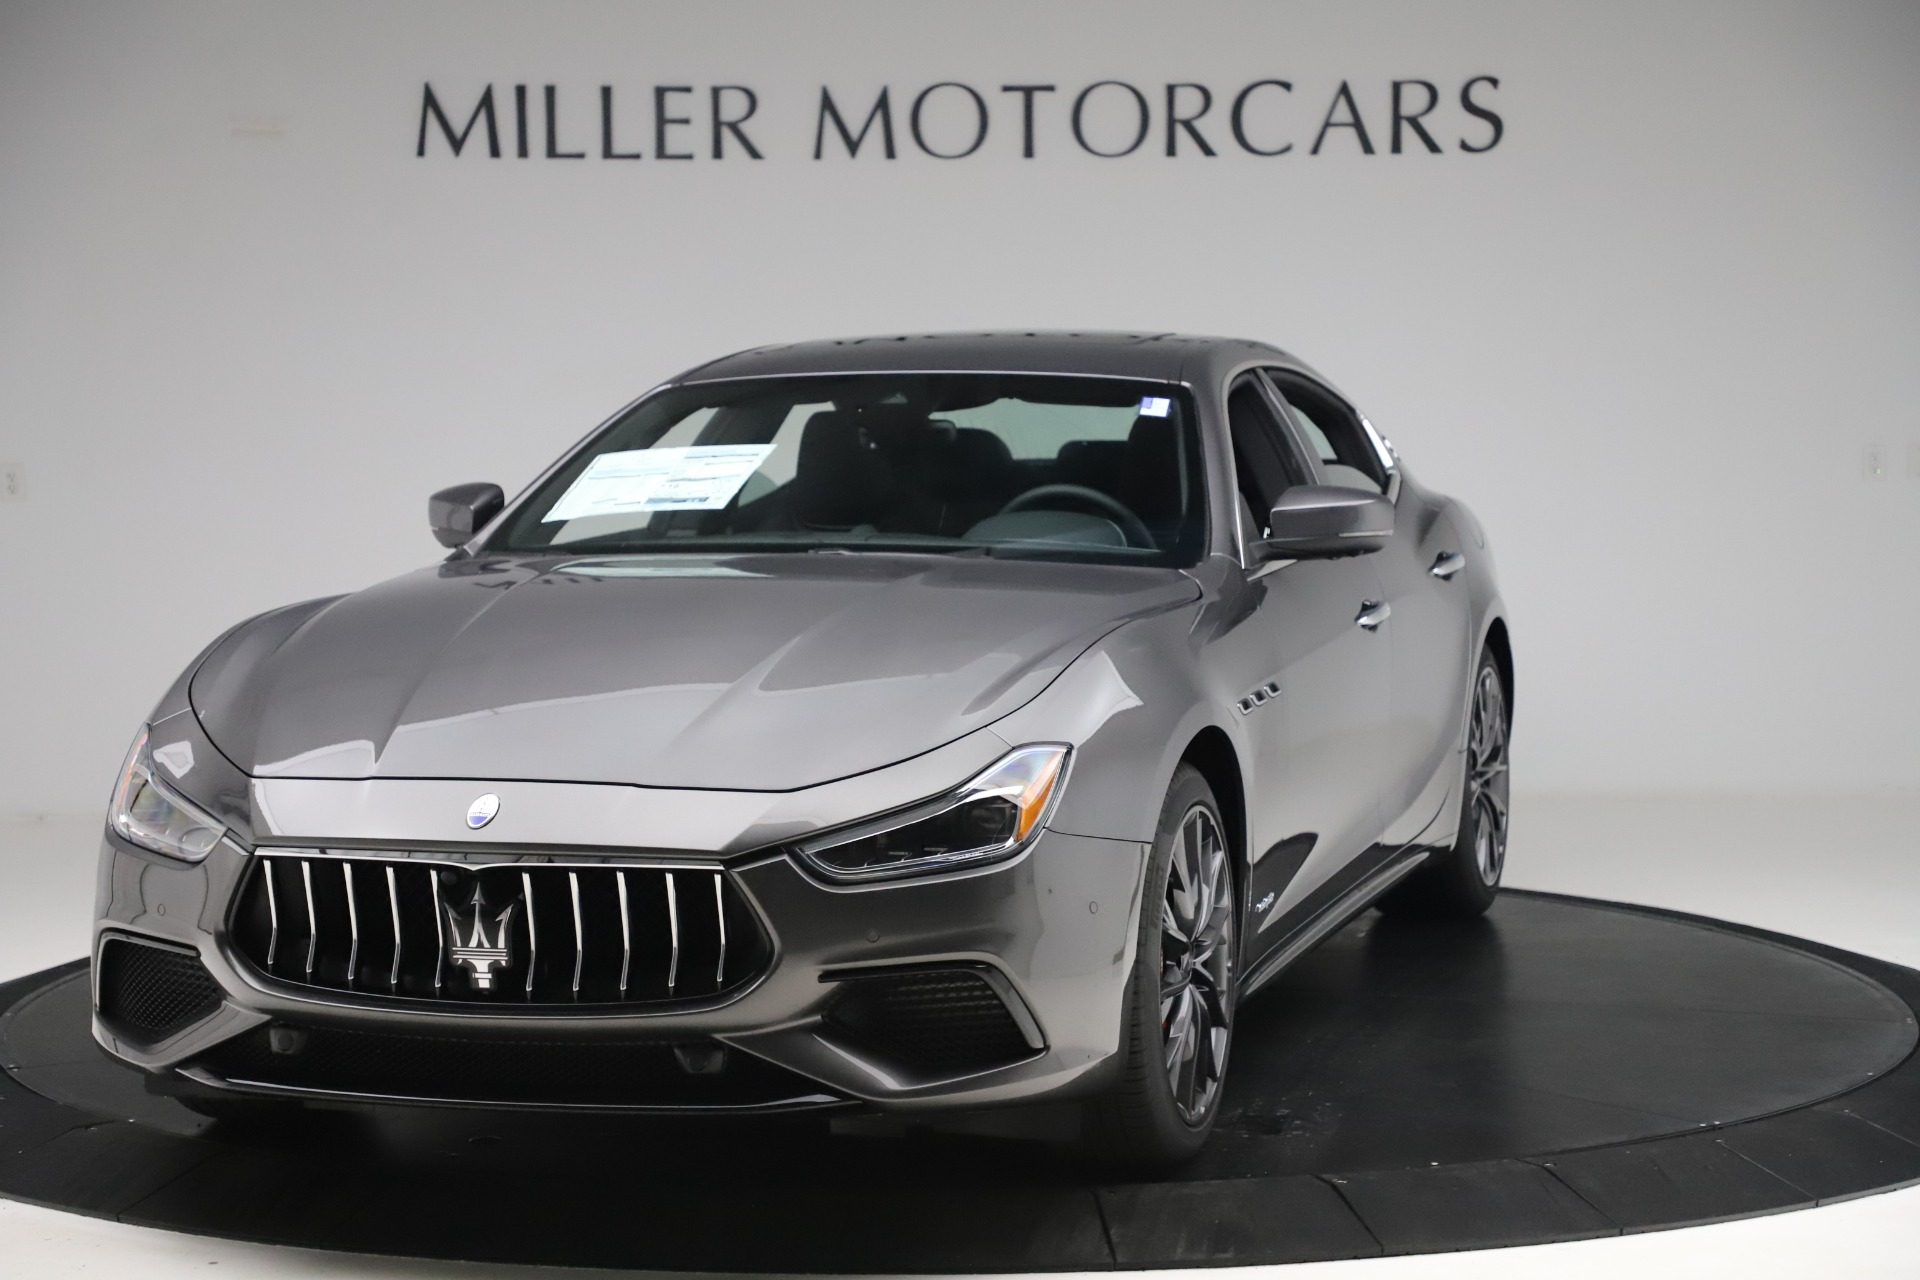 New 2019 Maserati Ghibli S Q4 GranSport for sale $100,695 at Pagani of Greenwich in Greenwich CT 06830 1